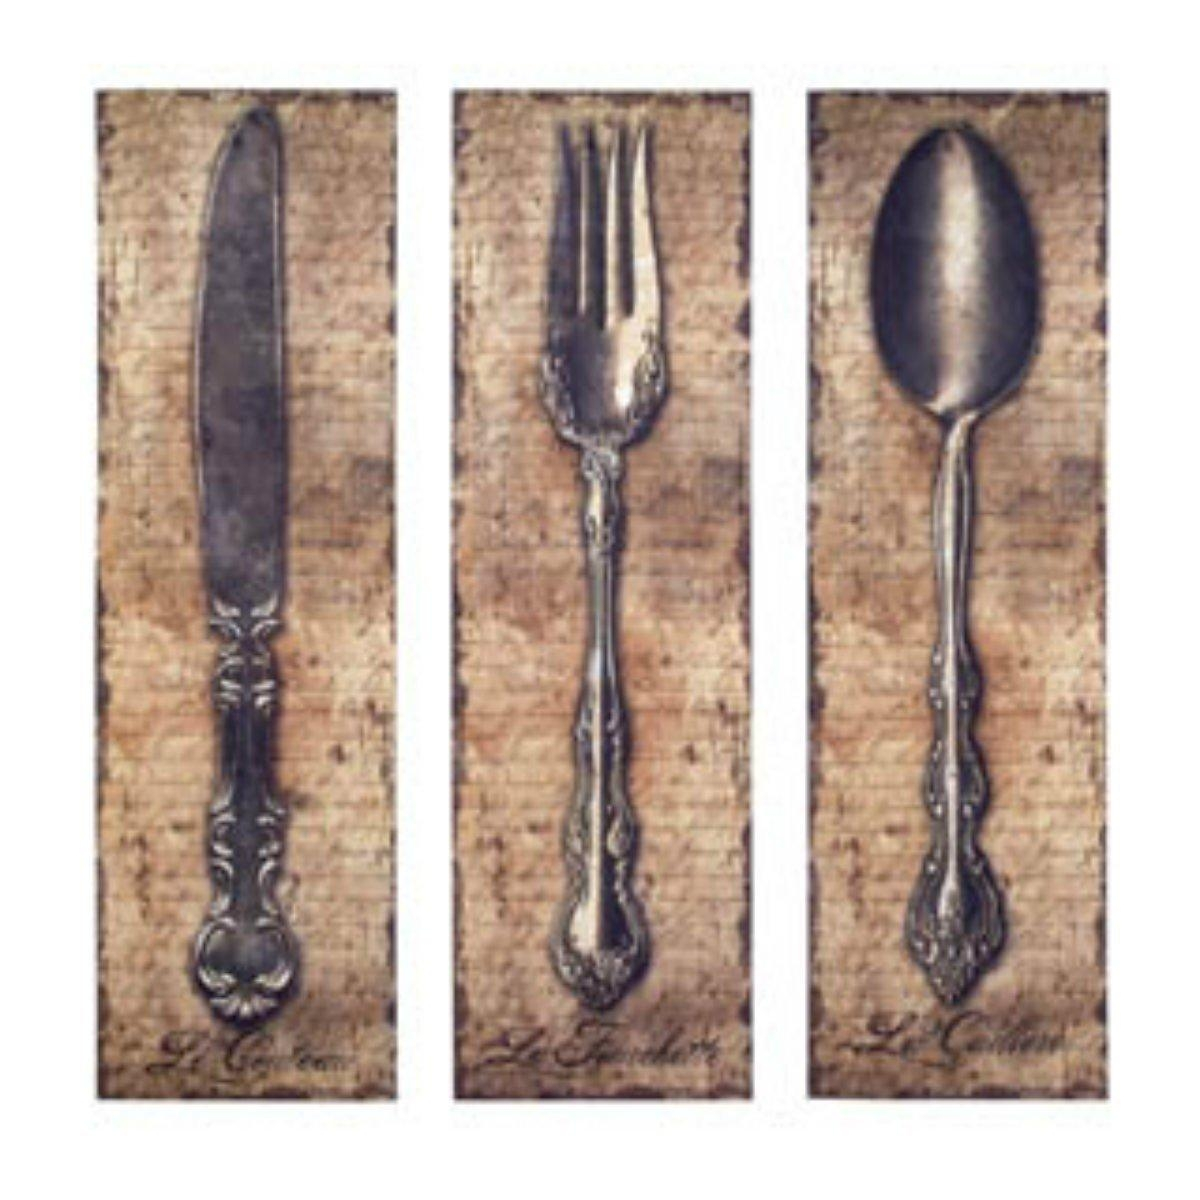 Cool Giant Spoon & Fork Kitchen Wall Decor Fork And Spoon Wall Inside Large Spoon And Fork Wall Art (Image 2 of 20)